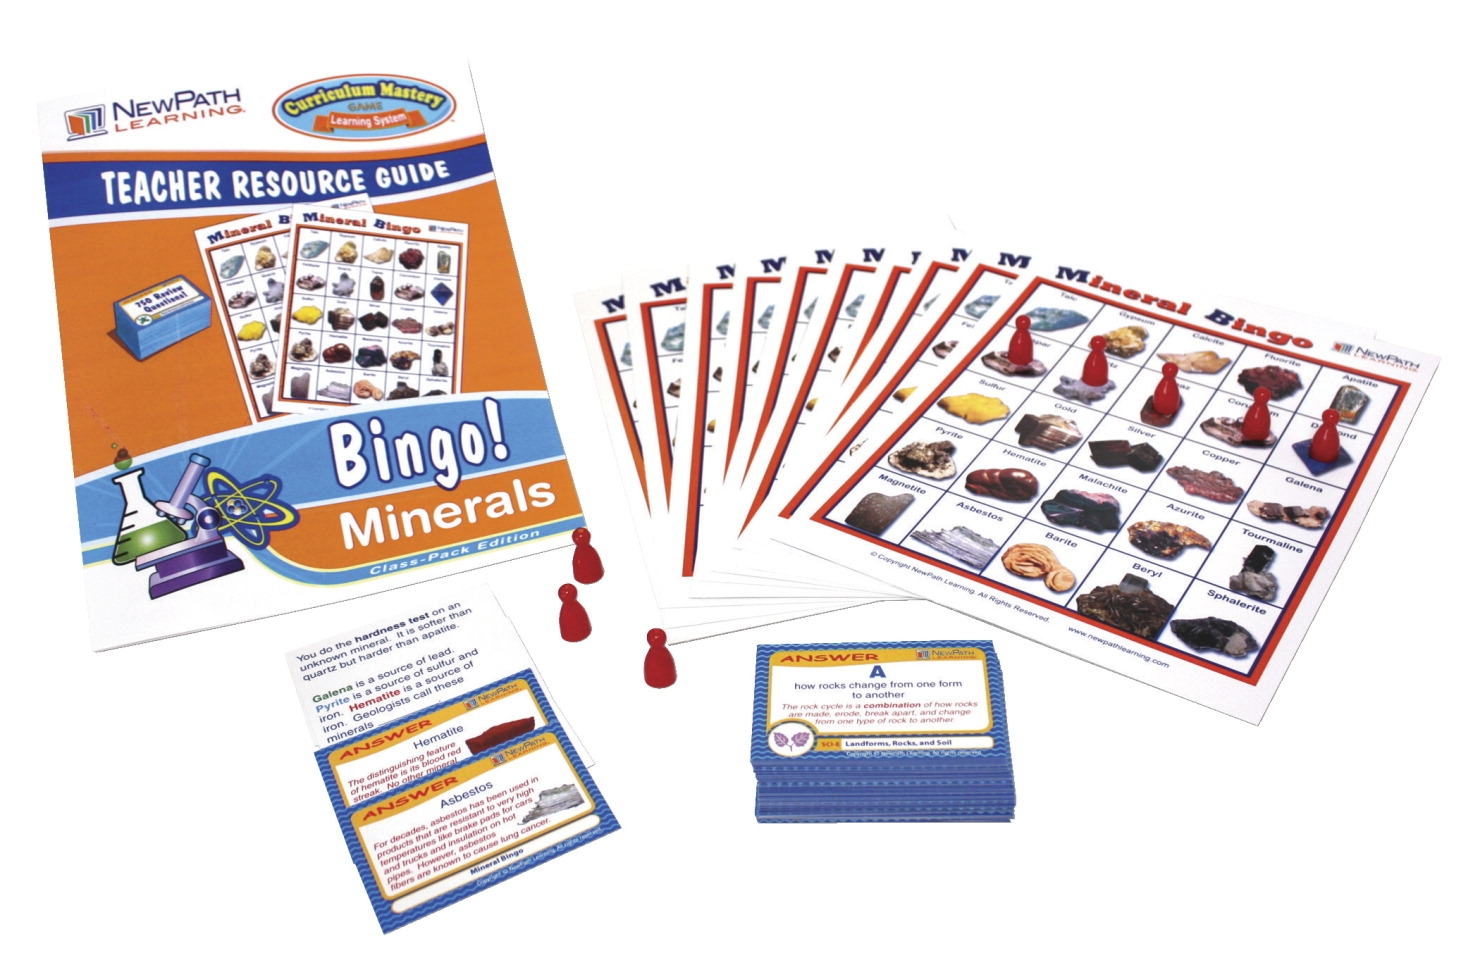 Newpath Mineral Bingo Game - 1474177 - Toys Activity Toys Ball & Cup Games 1474177